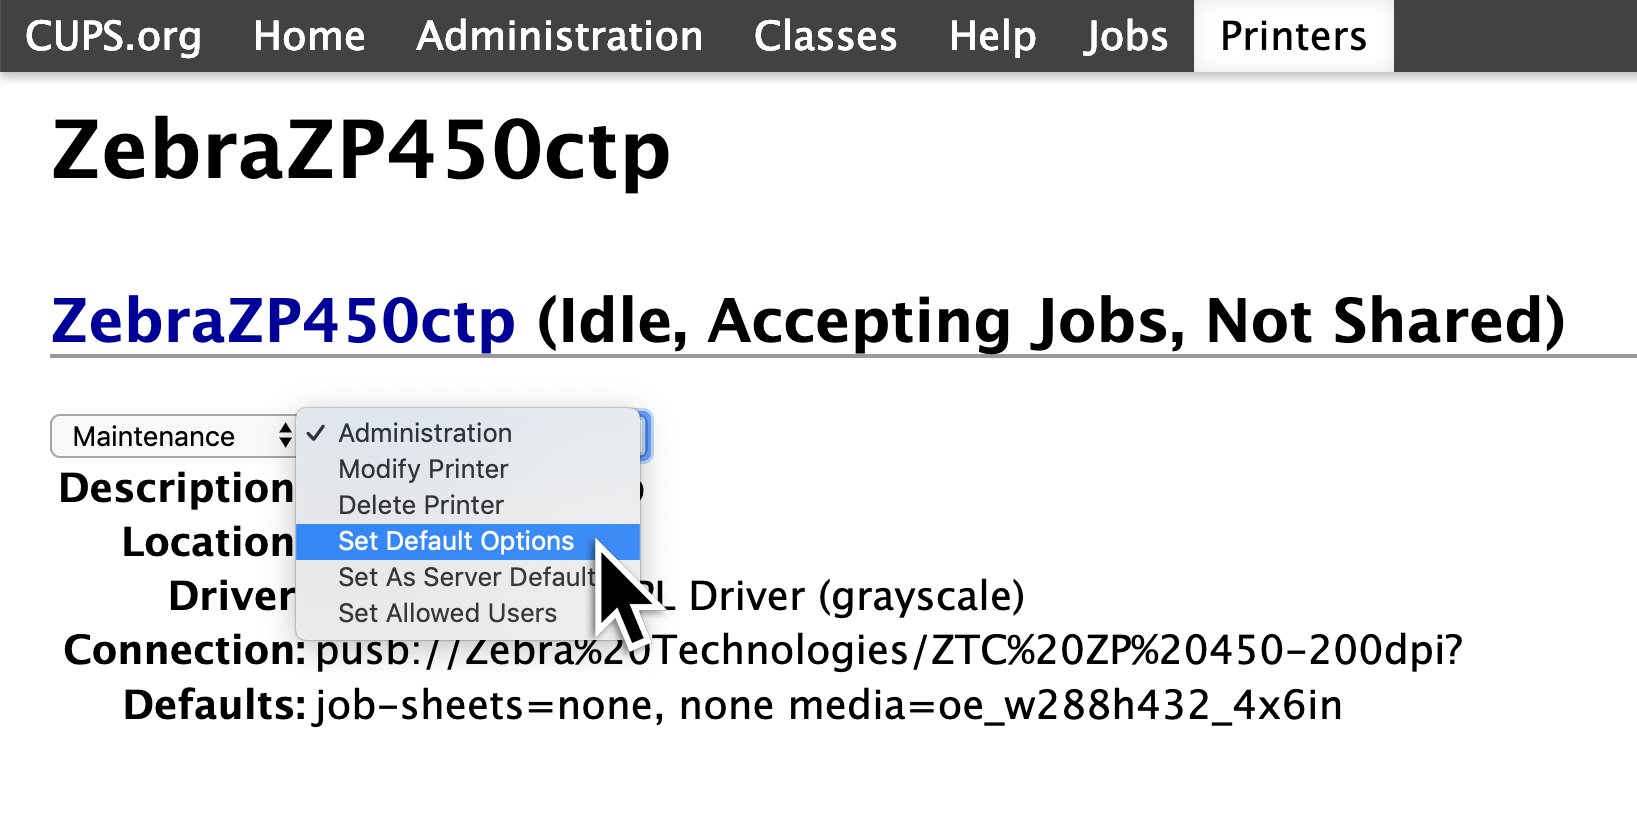 A screenshot showing a drop down menu for the Zebra Printer. In this drop down menu, the option 'Set Default Options' needs to be selected.